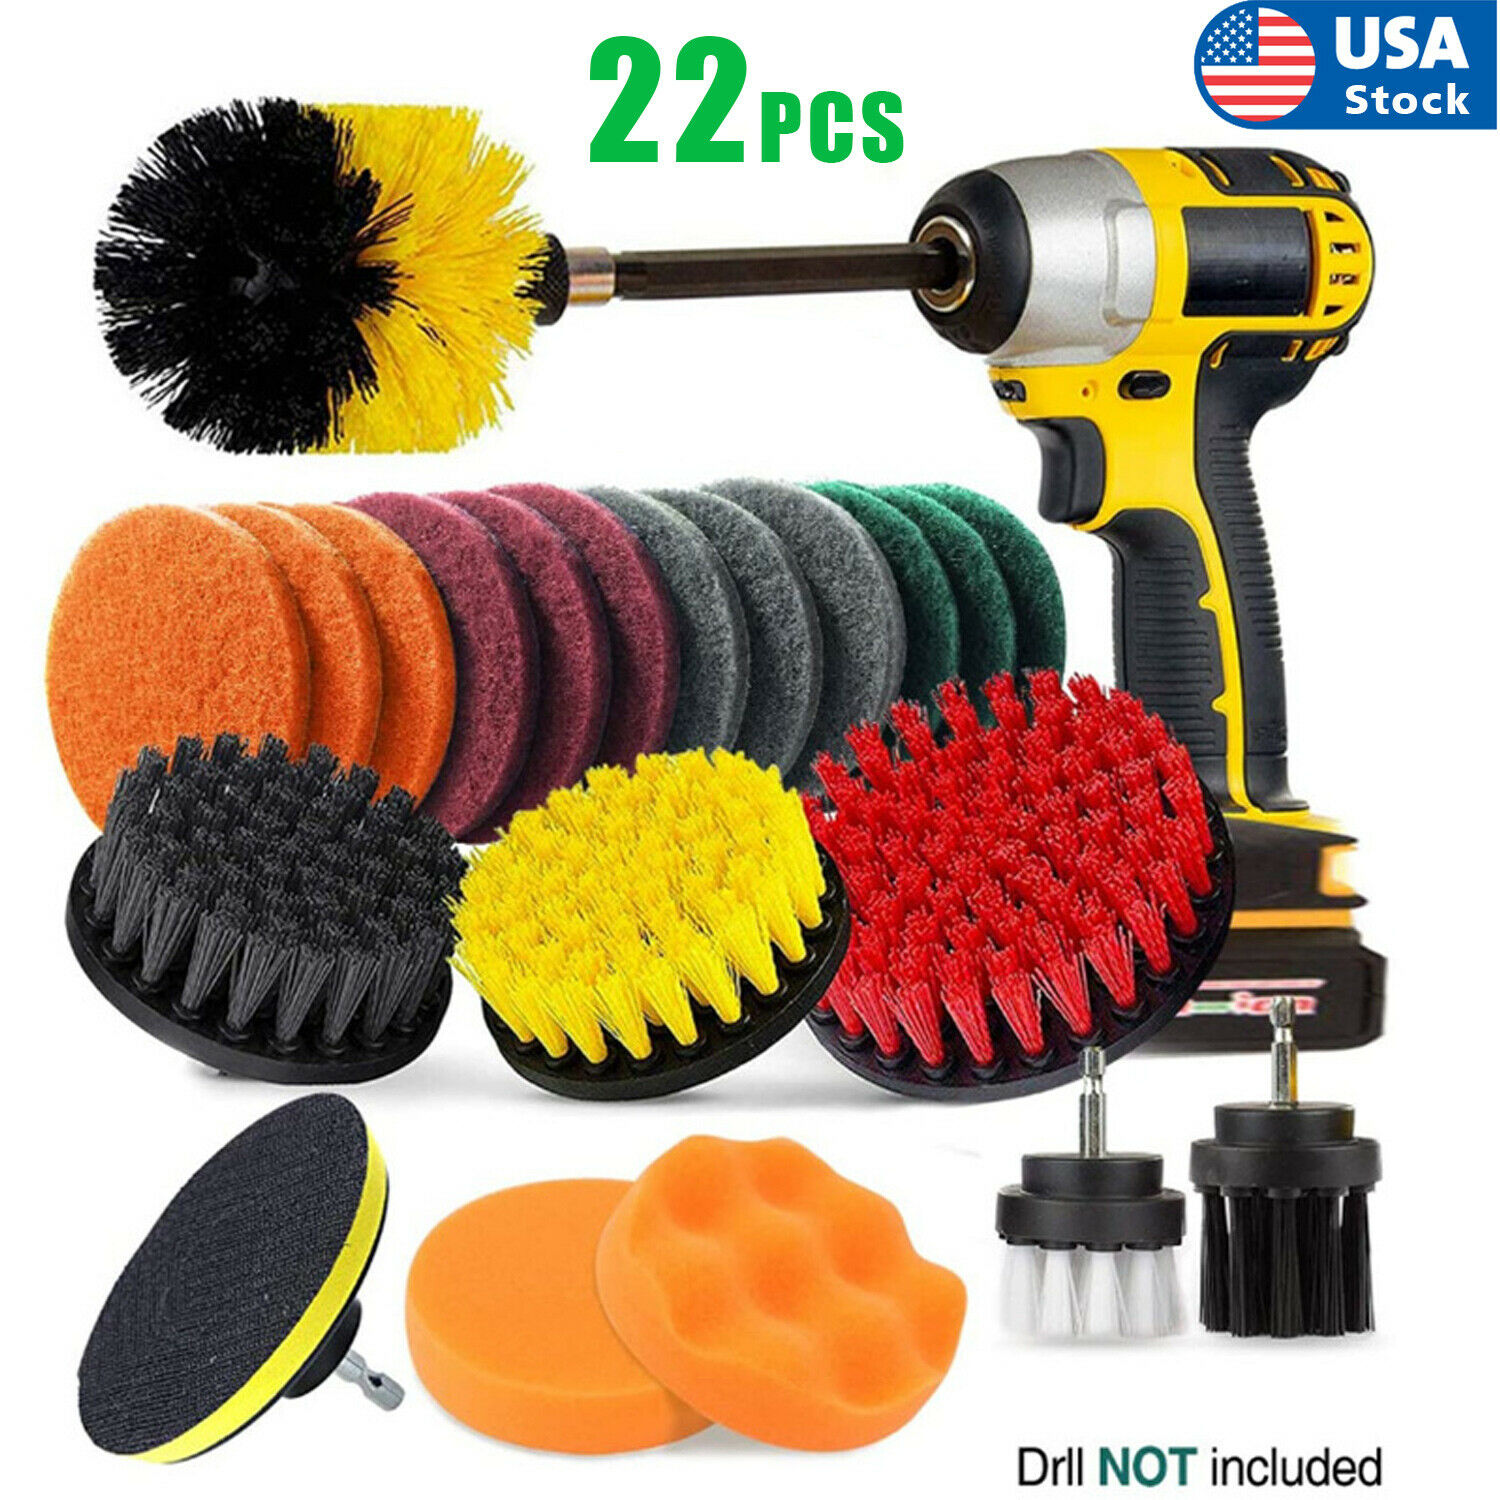 USA 22PCs Electric Drill Brush Set Scrub Pads Power Scrubber Brush Cleaning Kits Cleaning Products